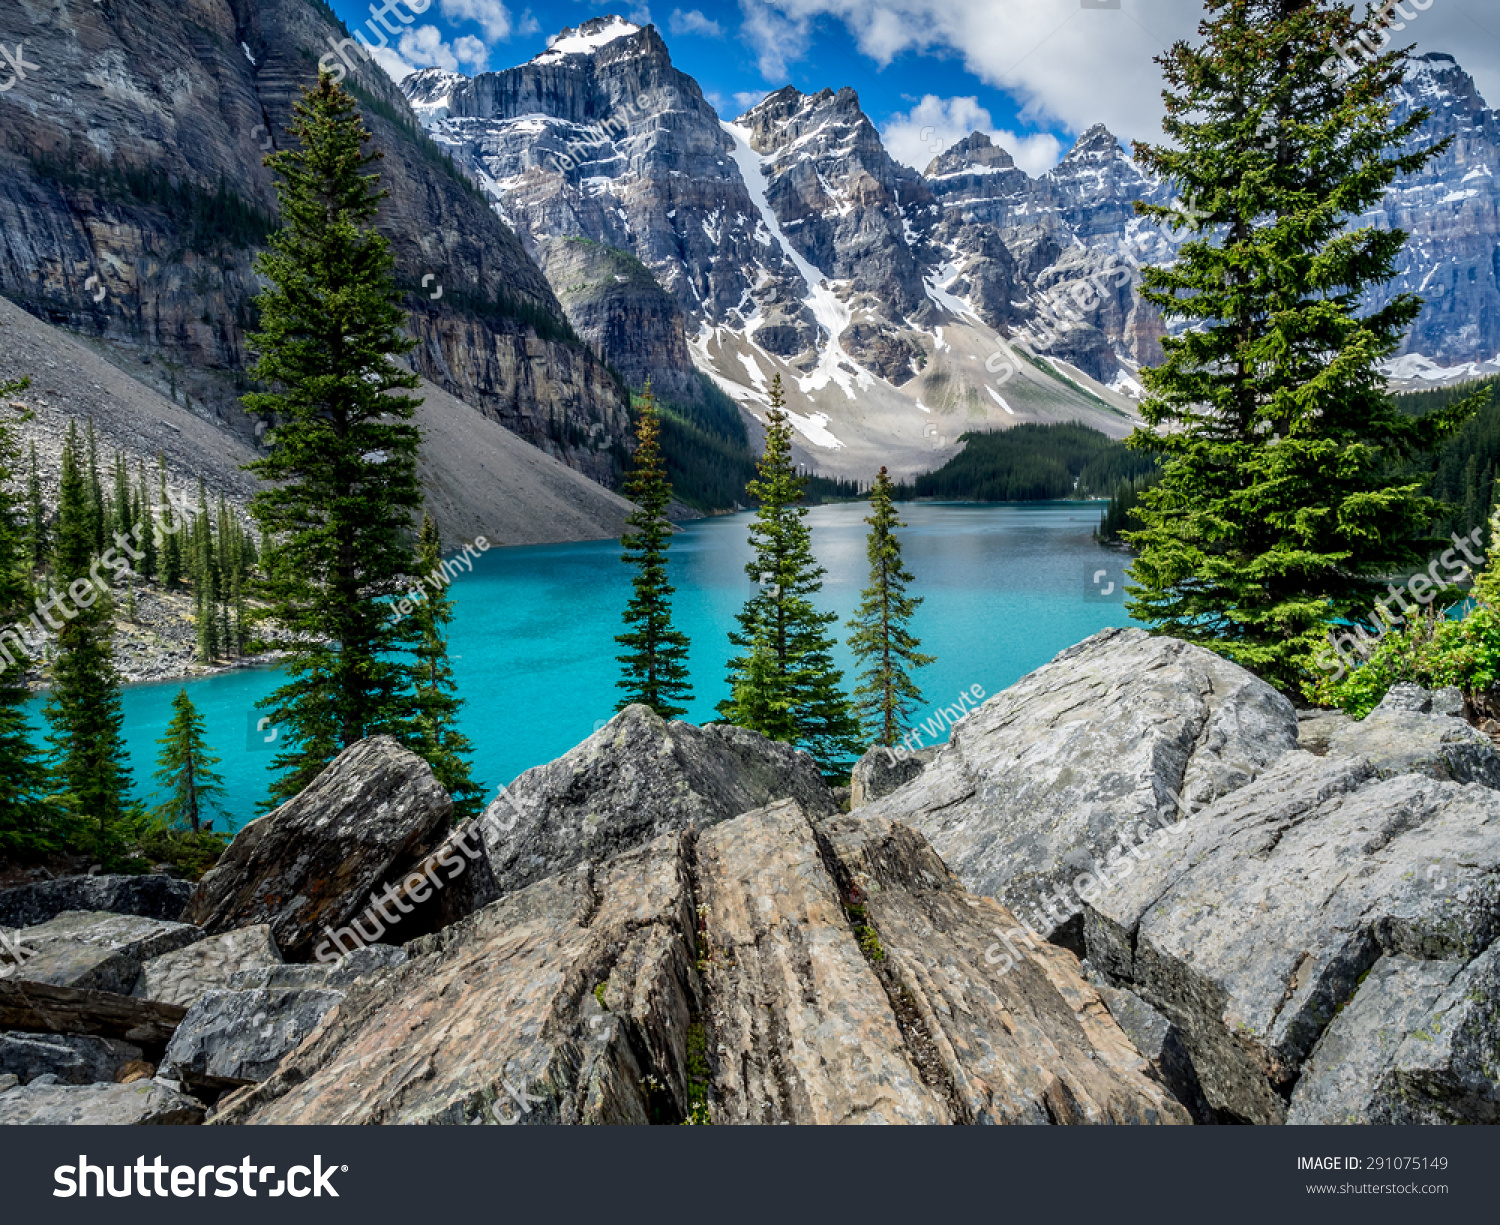 Moraine Lake in the Valley of the Ten Peaks, Banff